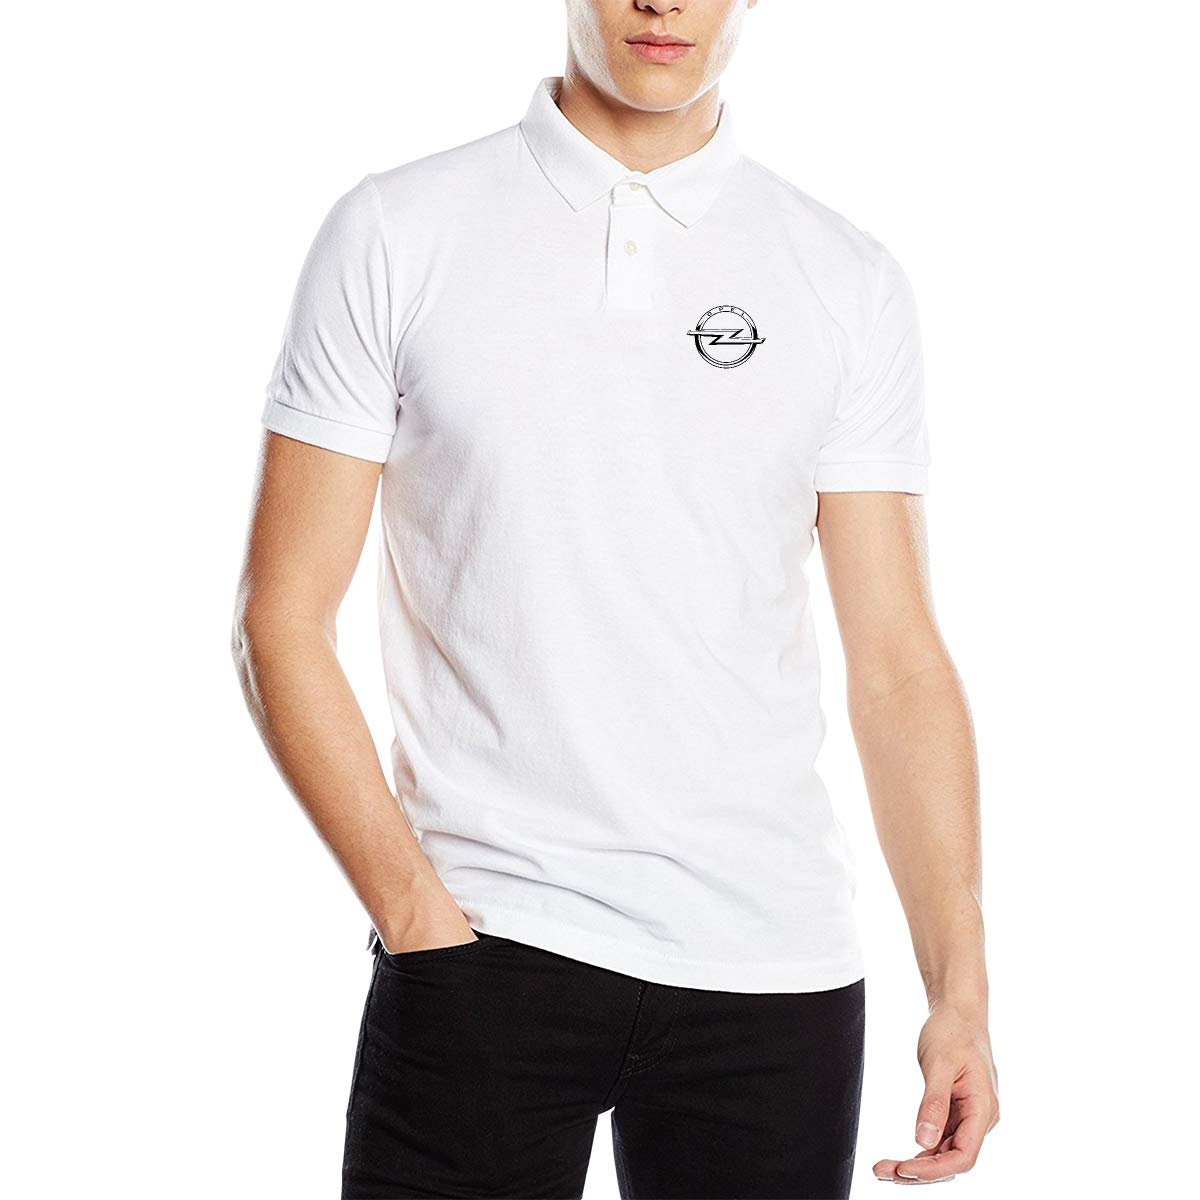 UESEU Design OPEL Logo Short Sleeve Cotton Athletic Polo Shirt T-Shirt for Man